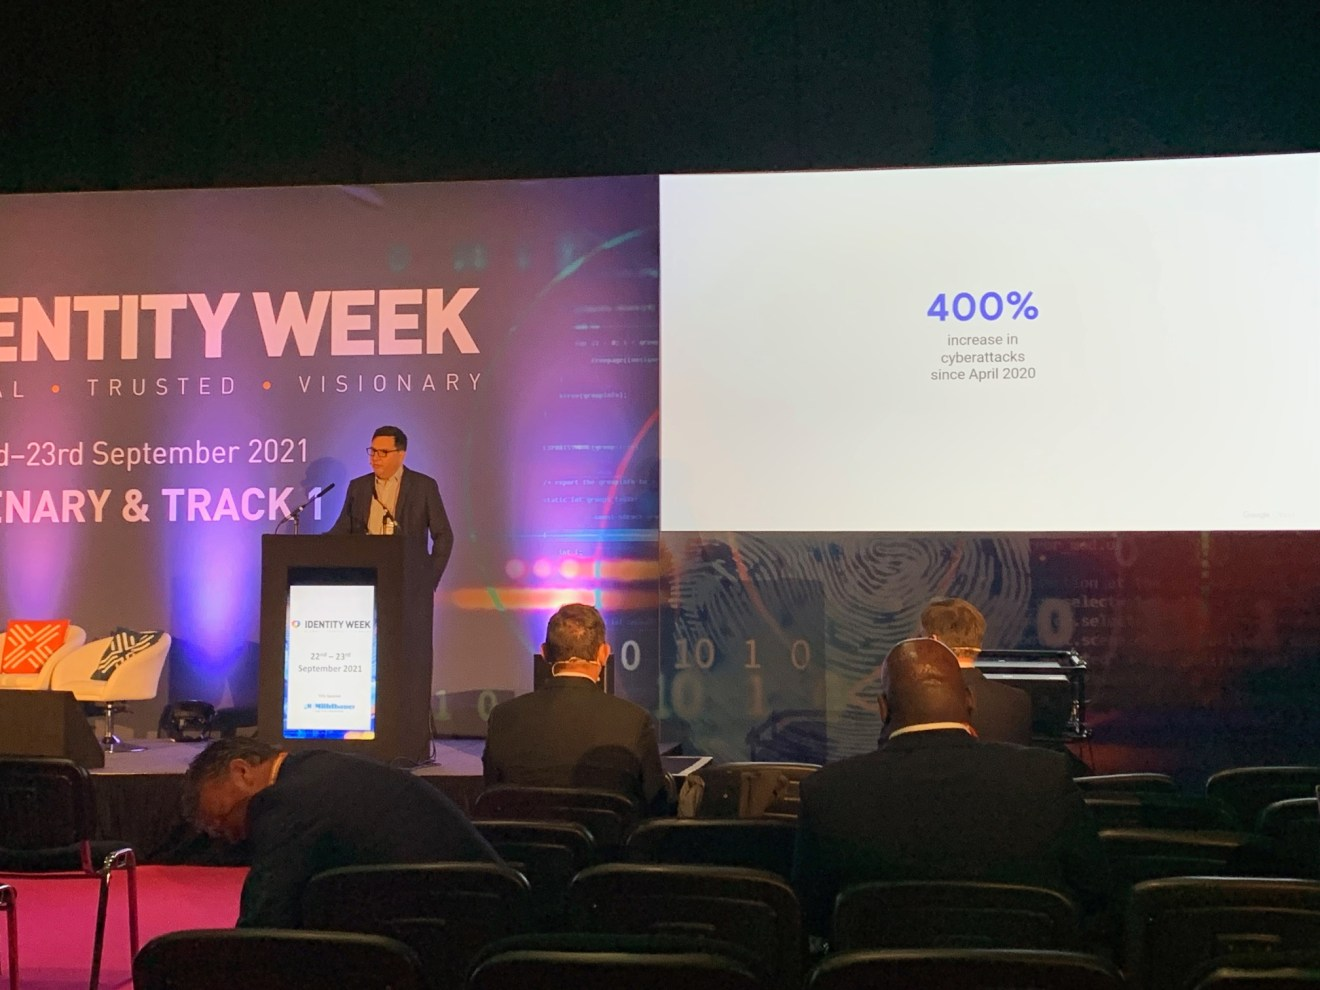 Zero trust, post COVID-19 travel take centre stage at Identity Week